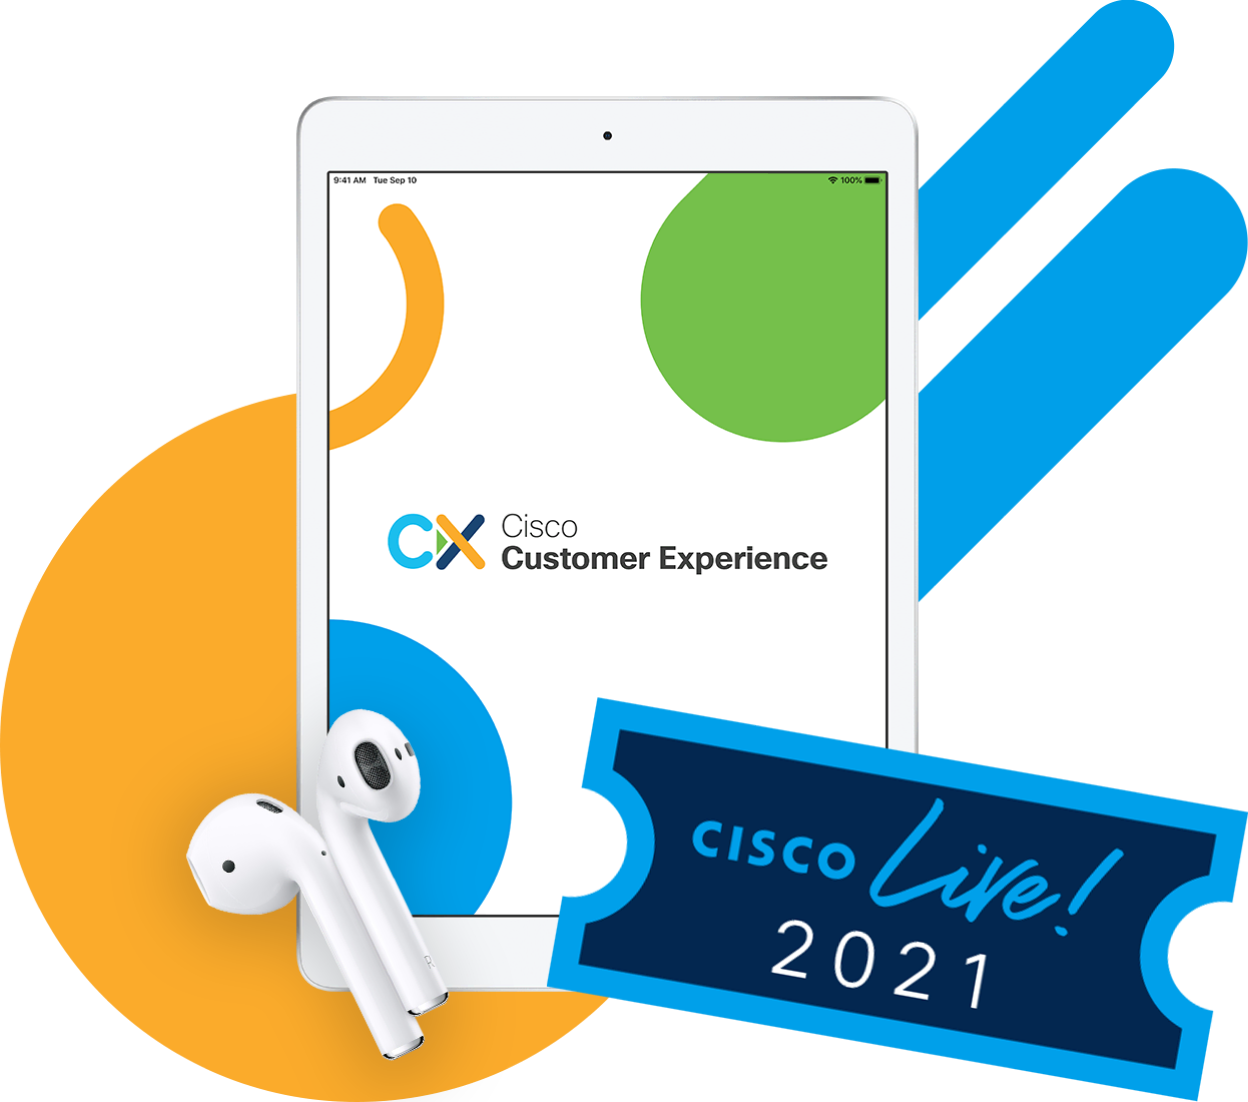 CX Battle Royale Grand Prize iPad, AirPod, Cisco Live Amsterdam Ticket